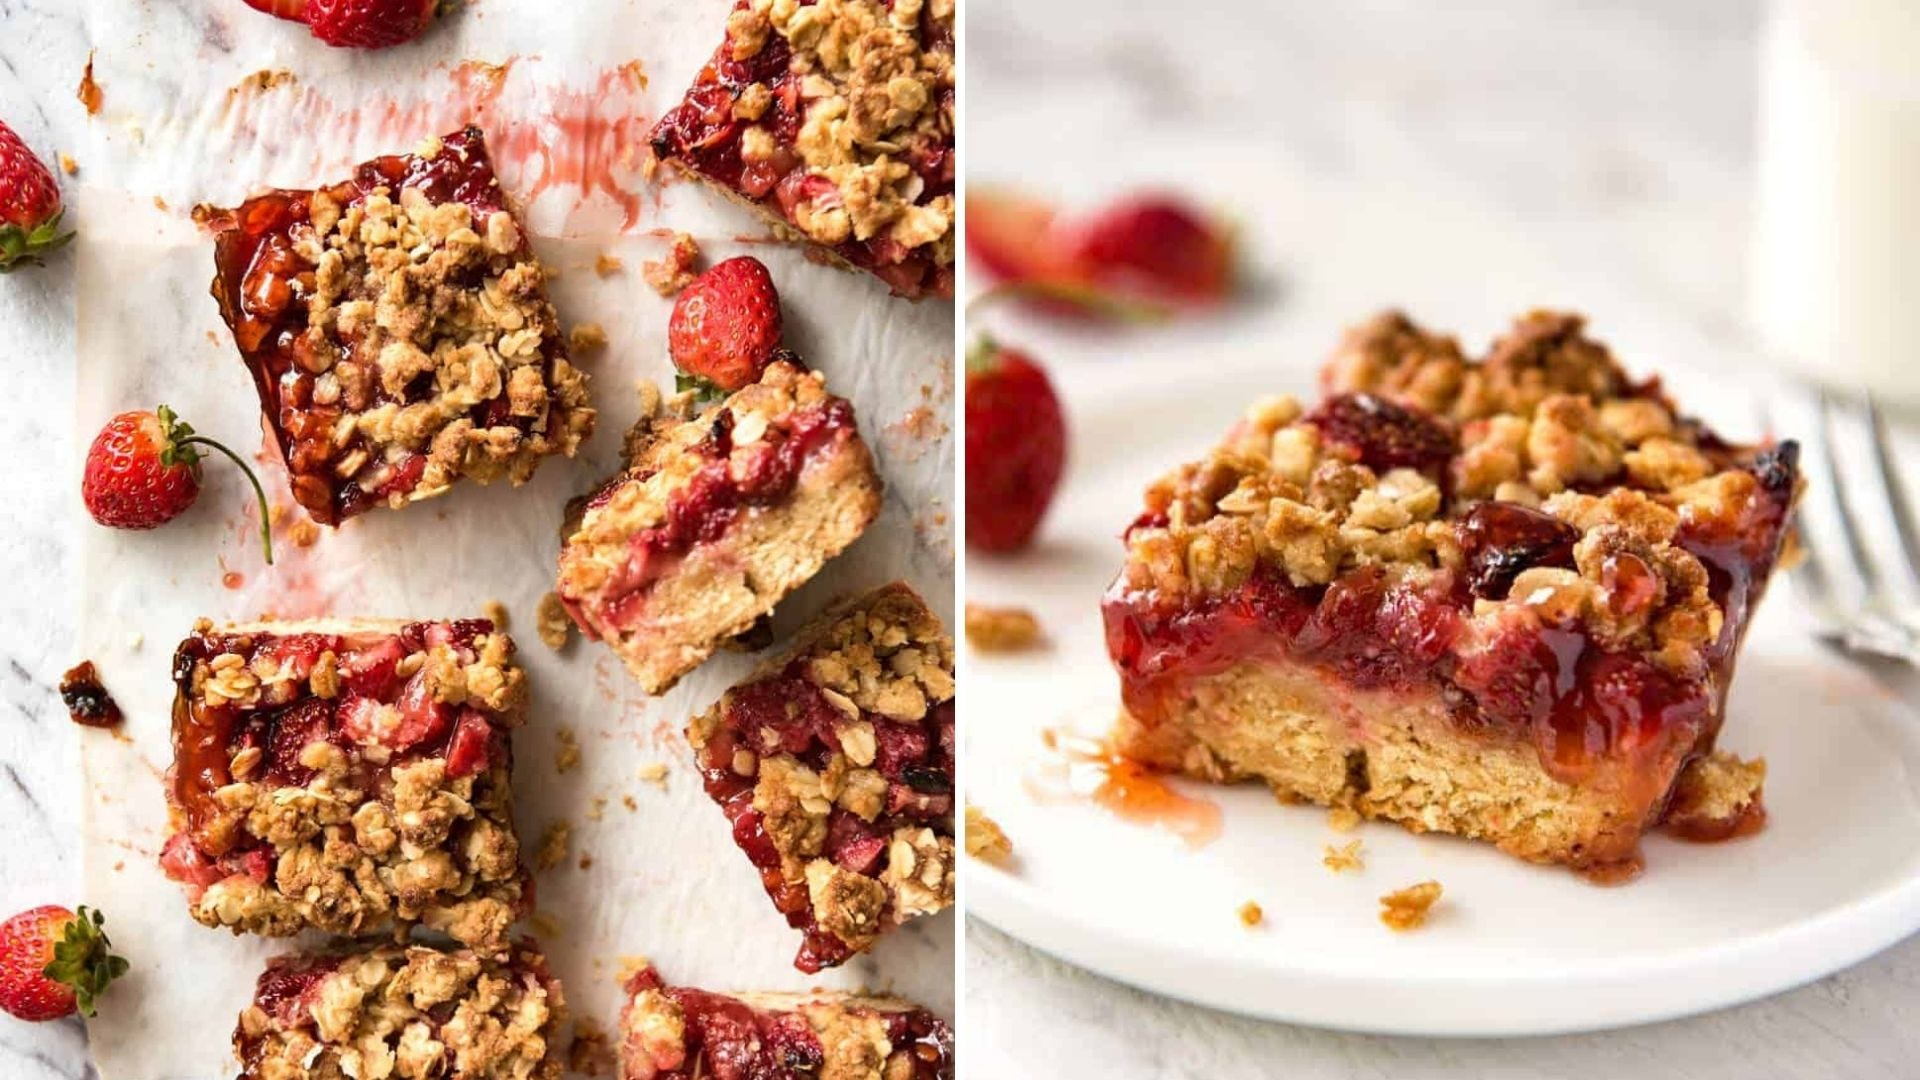 Oat bars with strawberries in the middle.